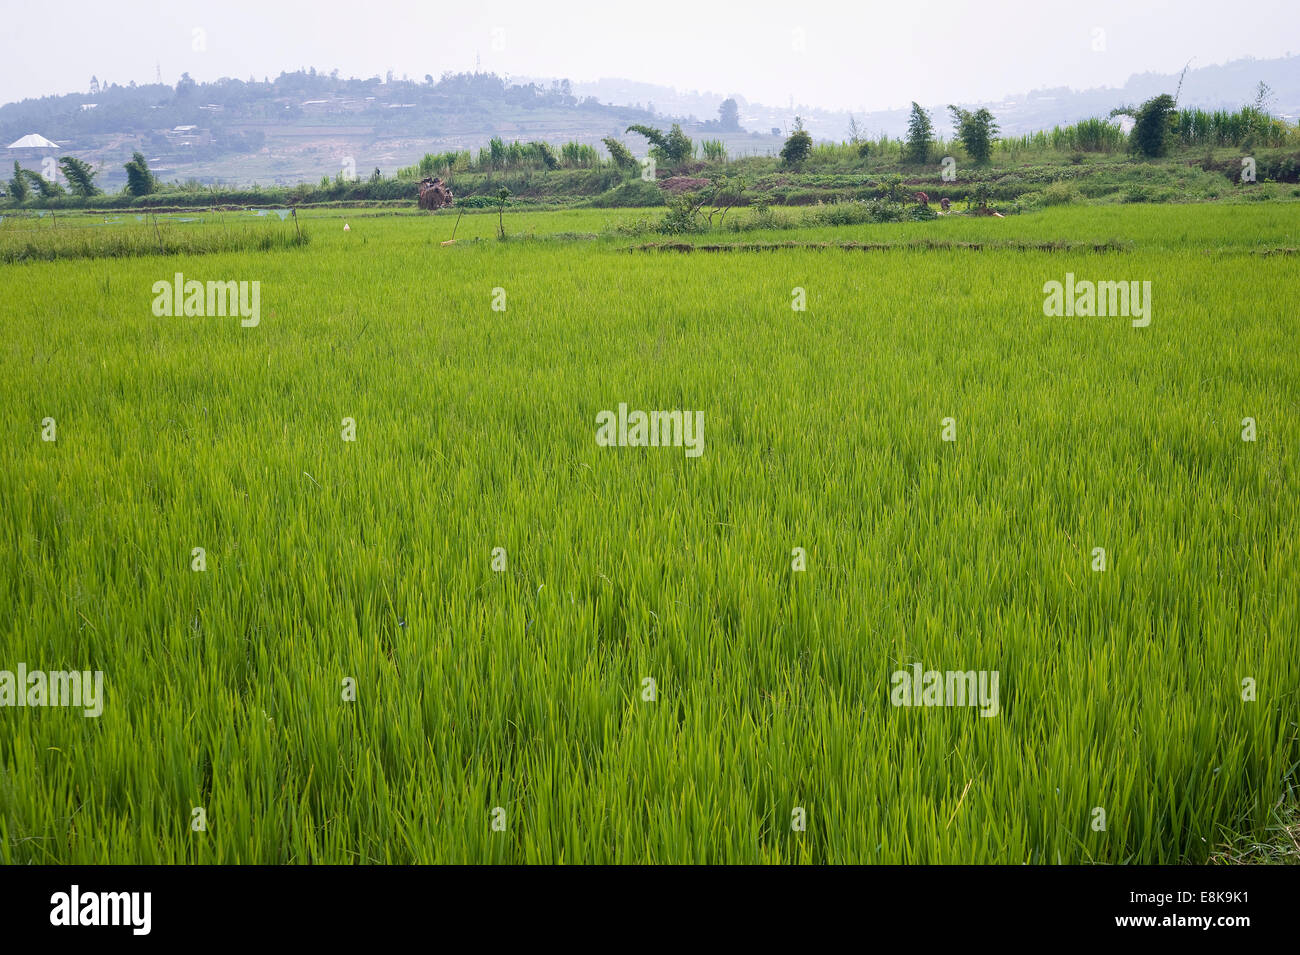 RWANDA, KIGALI: Around Kigali are many rice fields and also corn or vegetables fields. Many people work in agriculture. - Stock Image